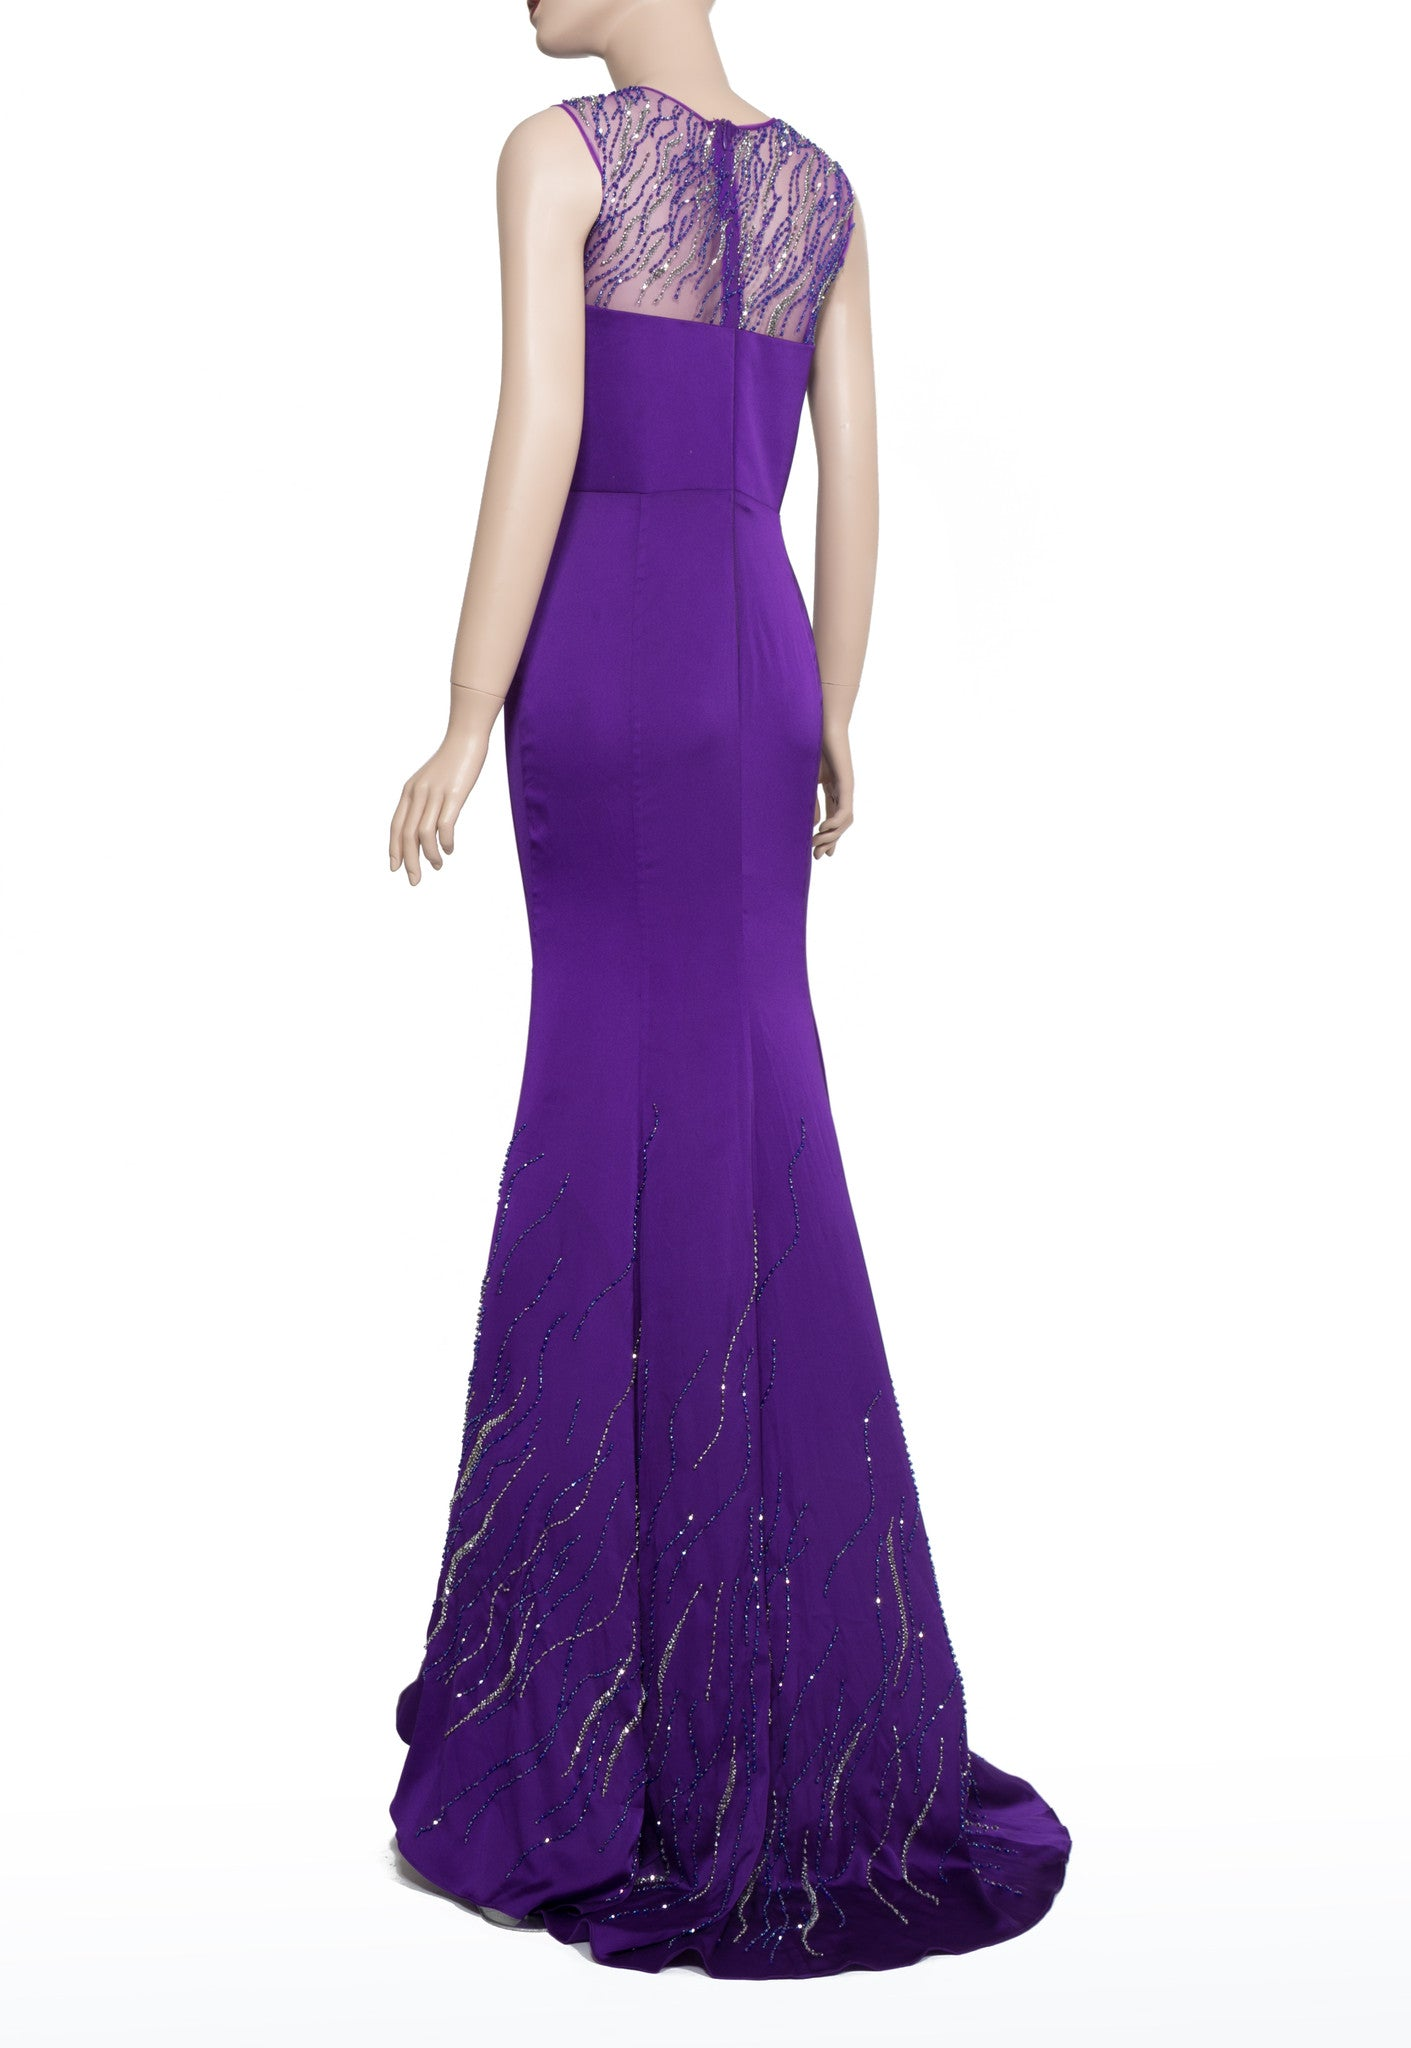 Purple Bead-embellished Dress (#Nicolle) - Dream Dresses by P.M.N  - 7